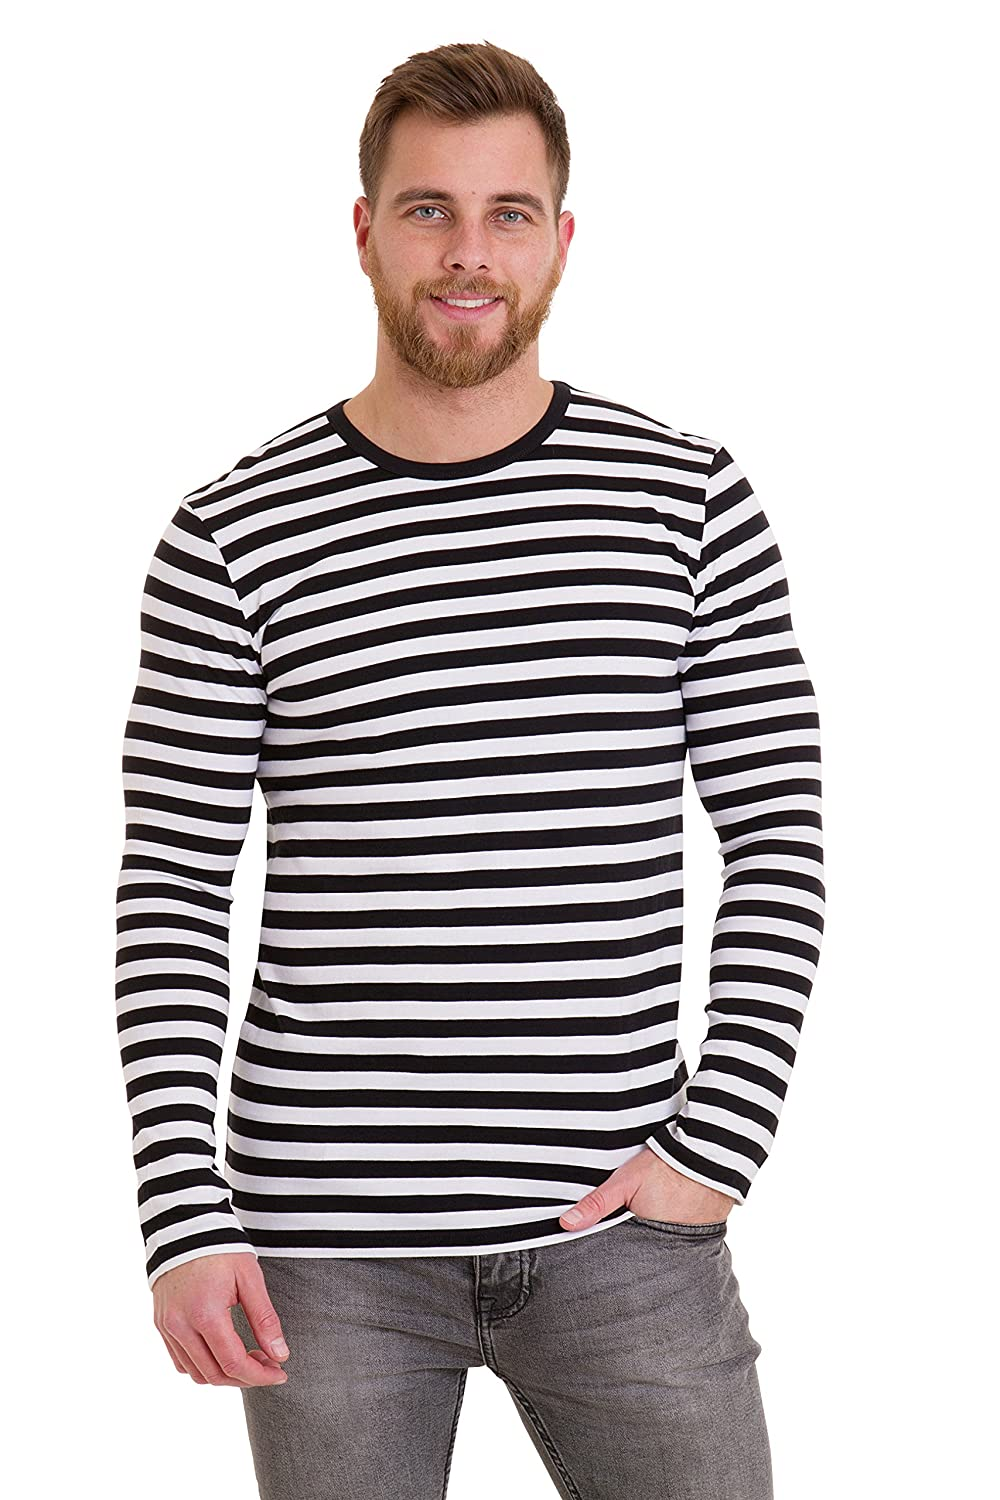 1960s Men's Clothing, 70s Men's Fashion Mens 60s Retro Black & White Striped Long Sleeve T Shirt $19.95 AT vintagedancer.com